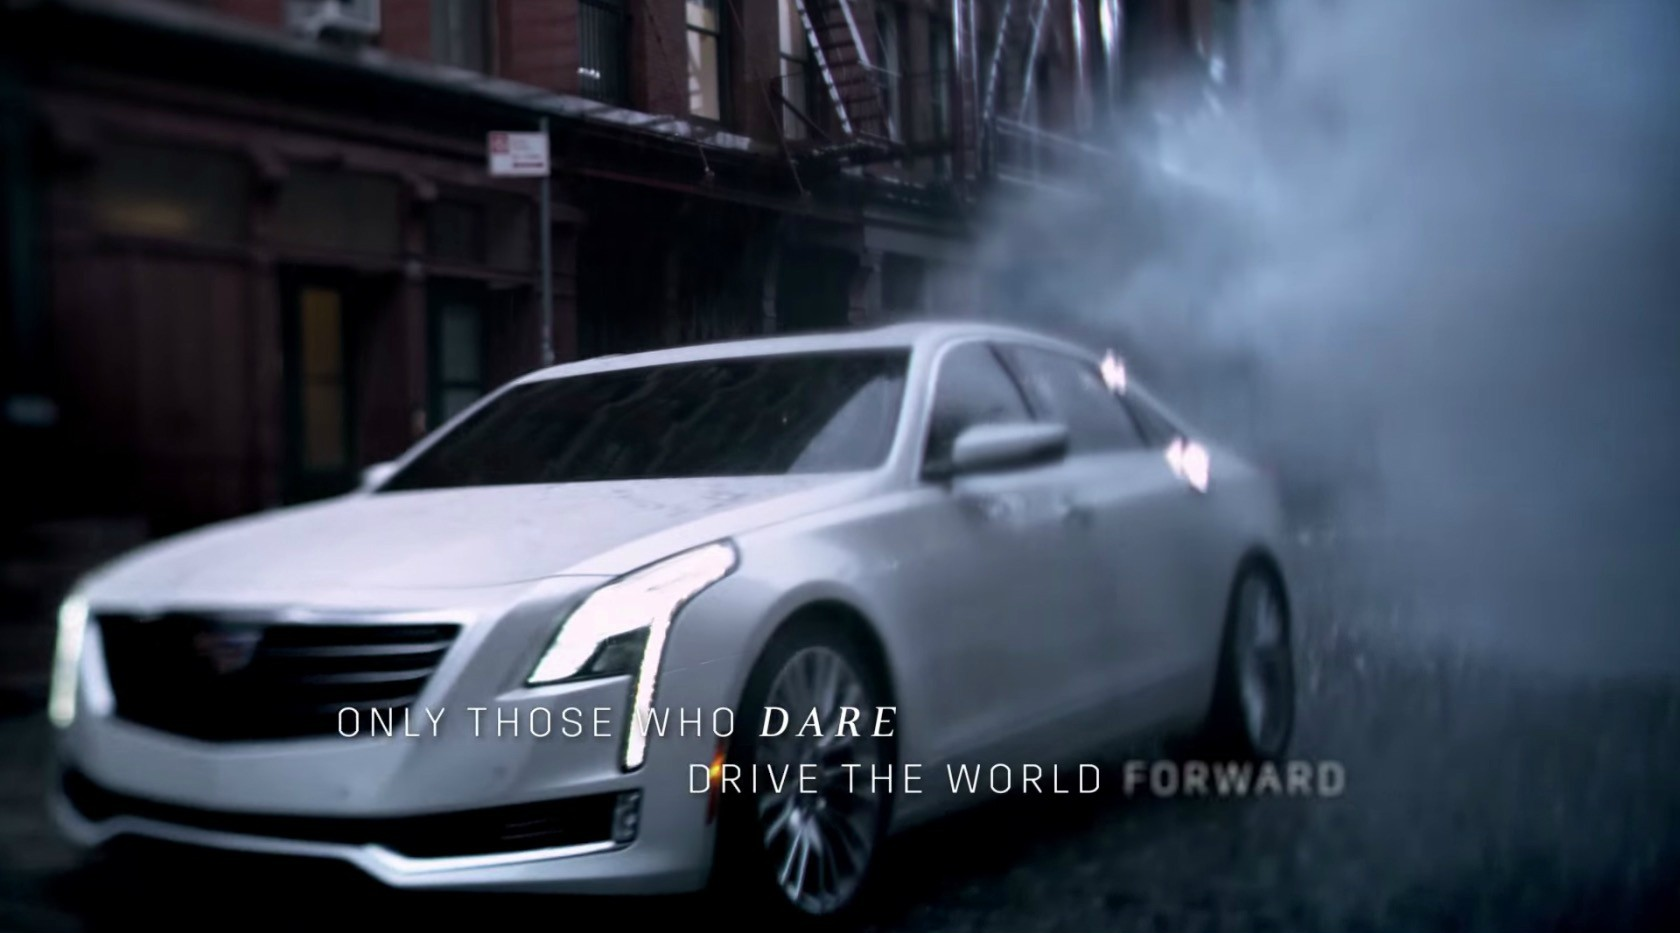 2016 cadillac ct6 sedan revealed in oscars ad wants us to daregently autoevolution. Black Bedroom Furniture Sets. Home Design Ideas